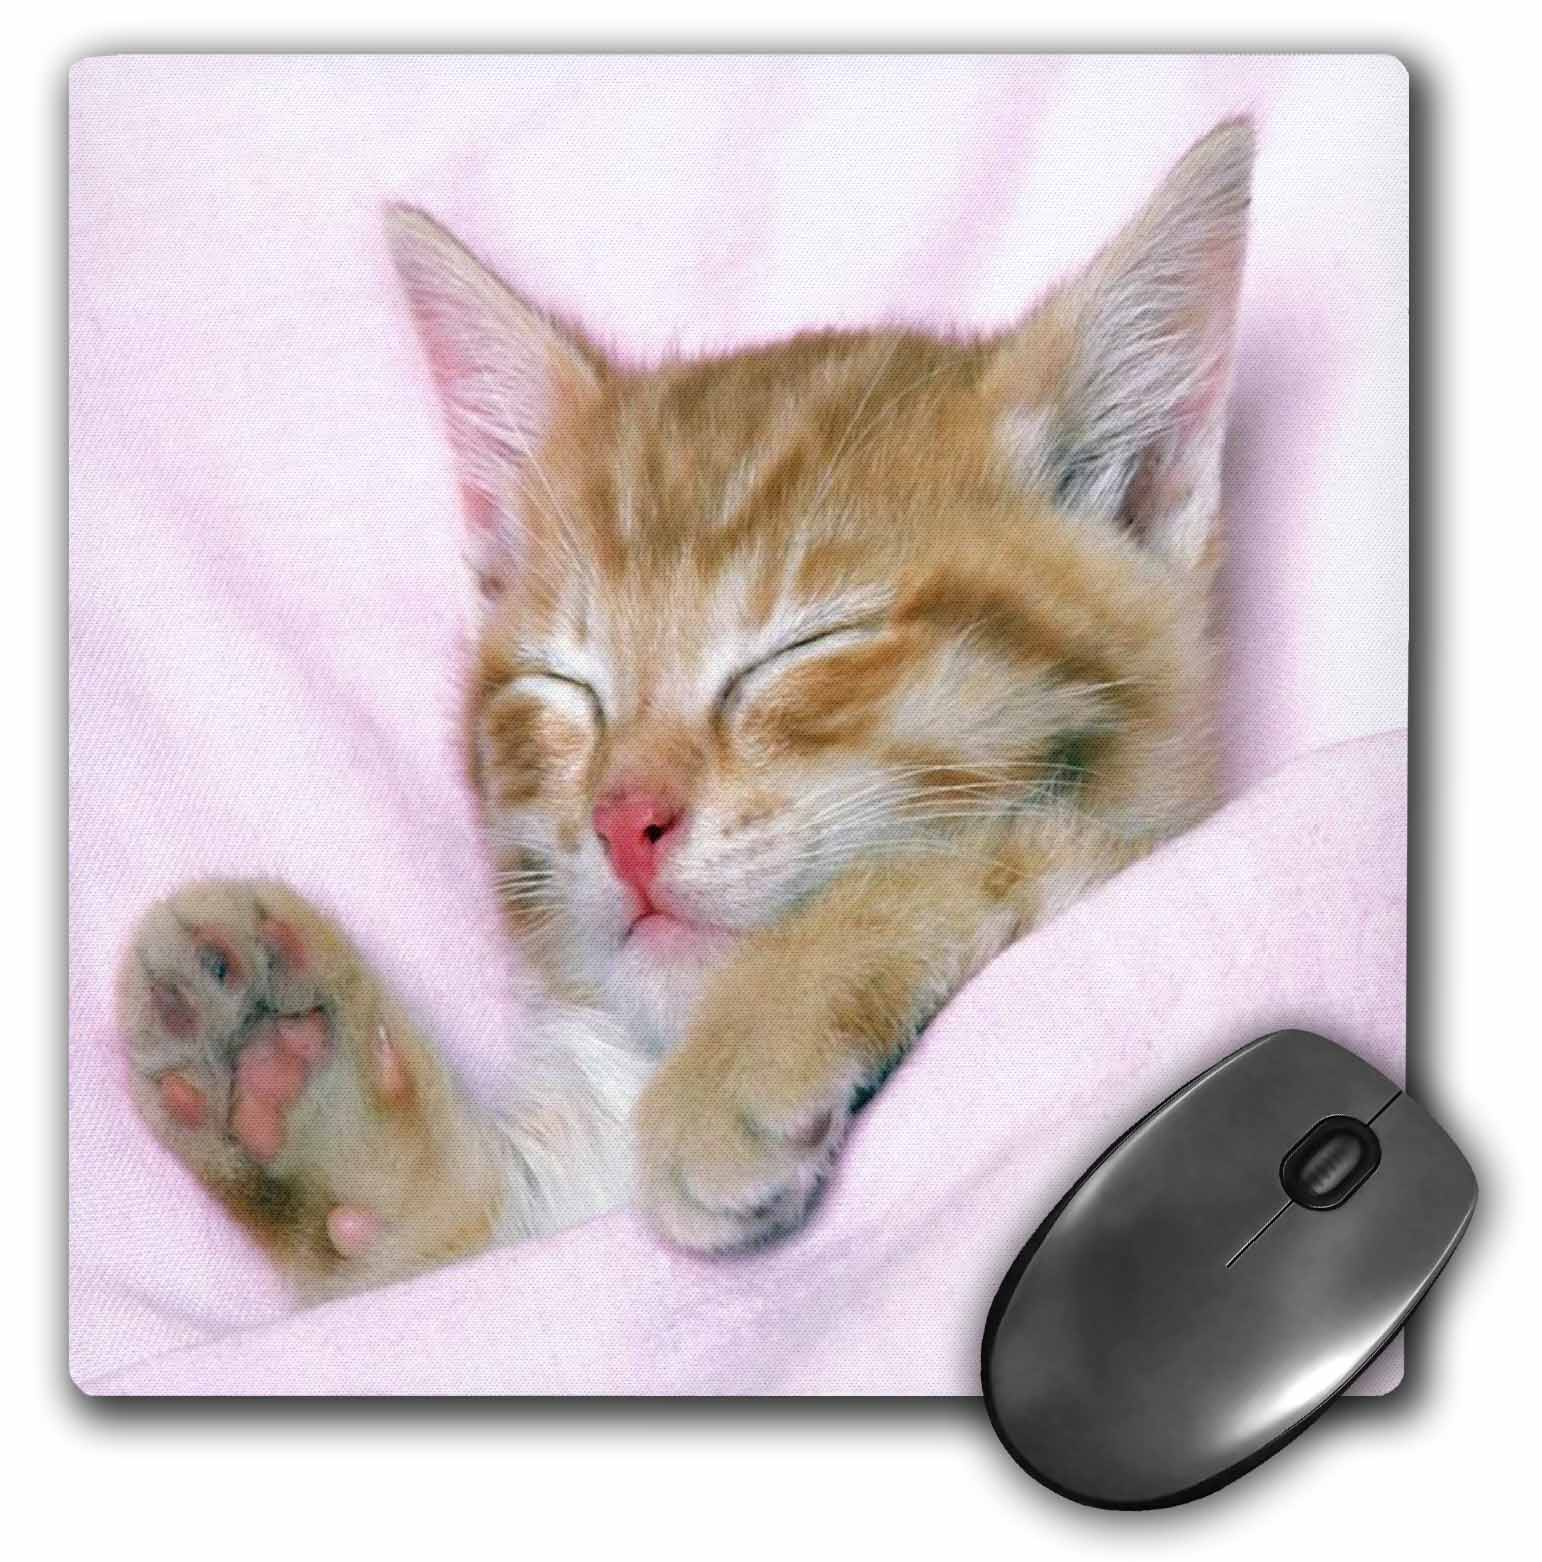 3dRose Sweetest Little Kitten All Snuggled Up, Mouse Pad, 8 by 8 inches